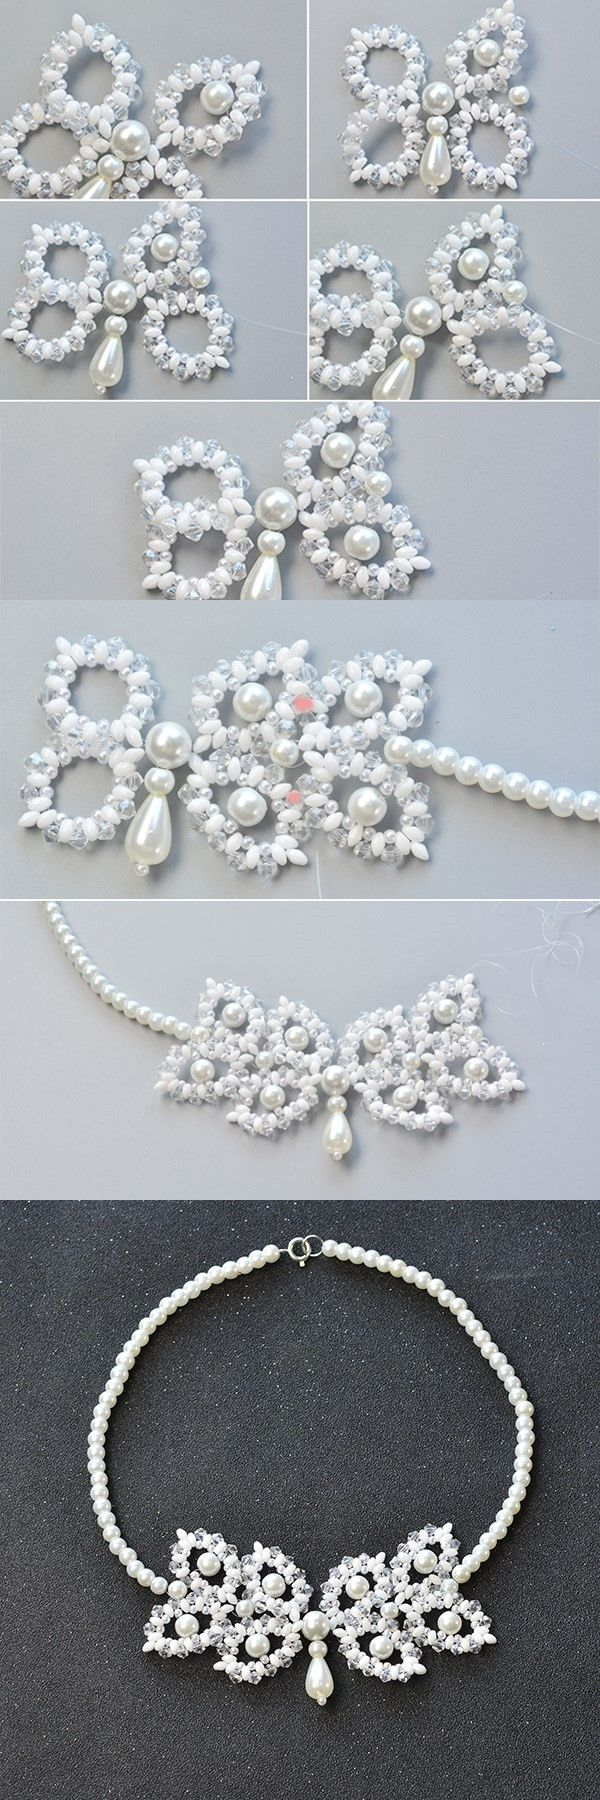 Like the 2-hole seed beads necklace?The details will be published by LC.Pandahall.com